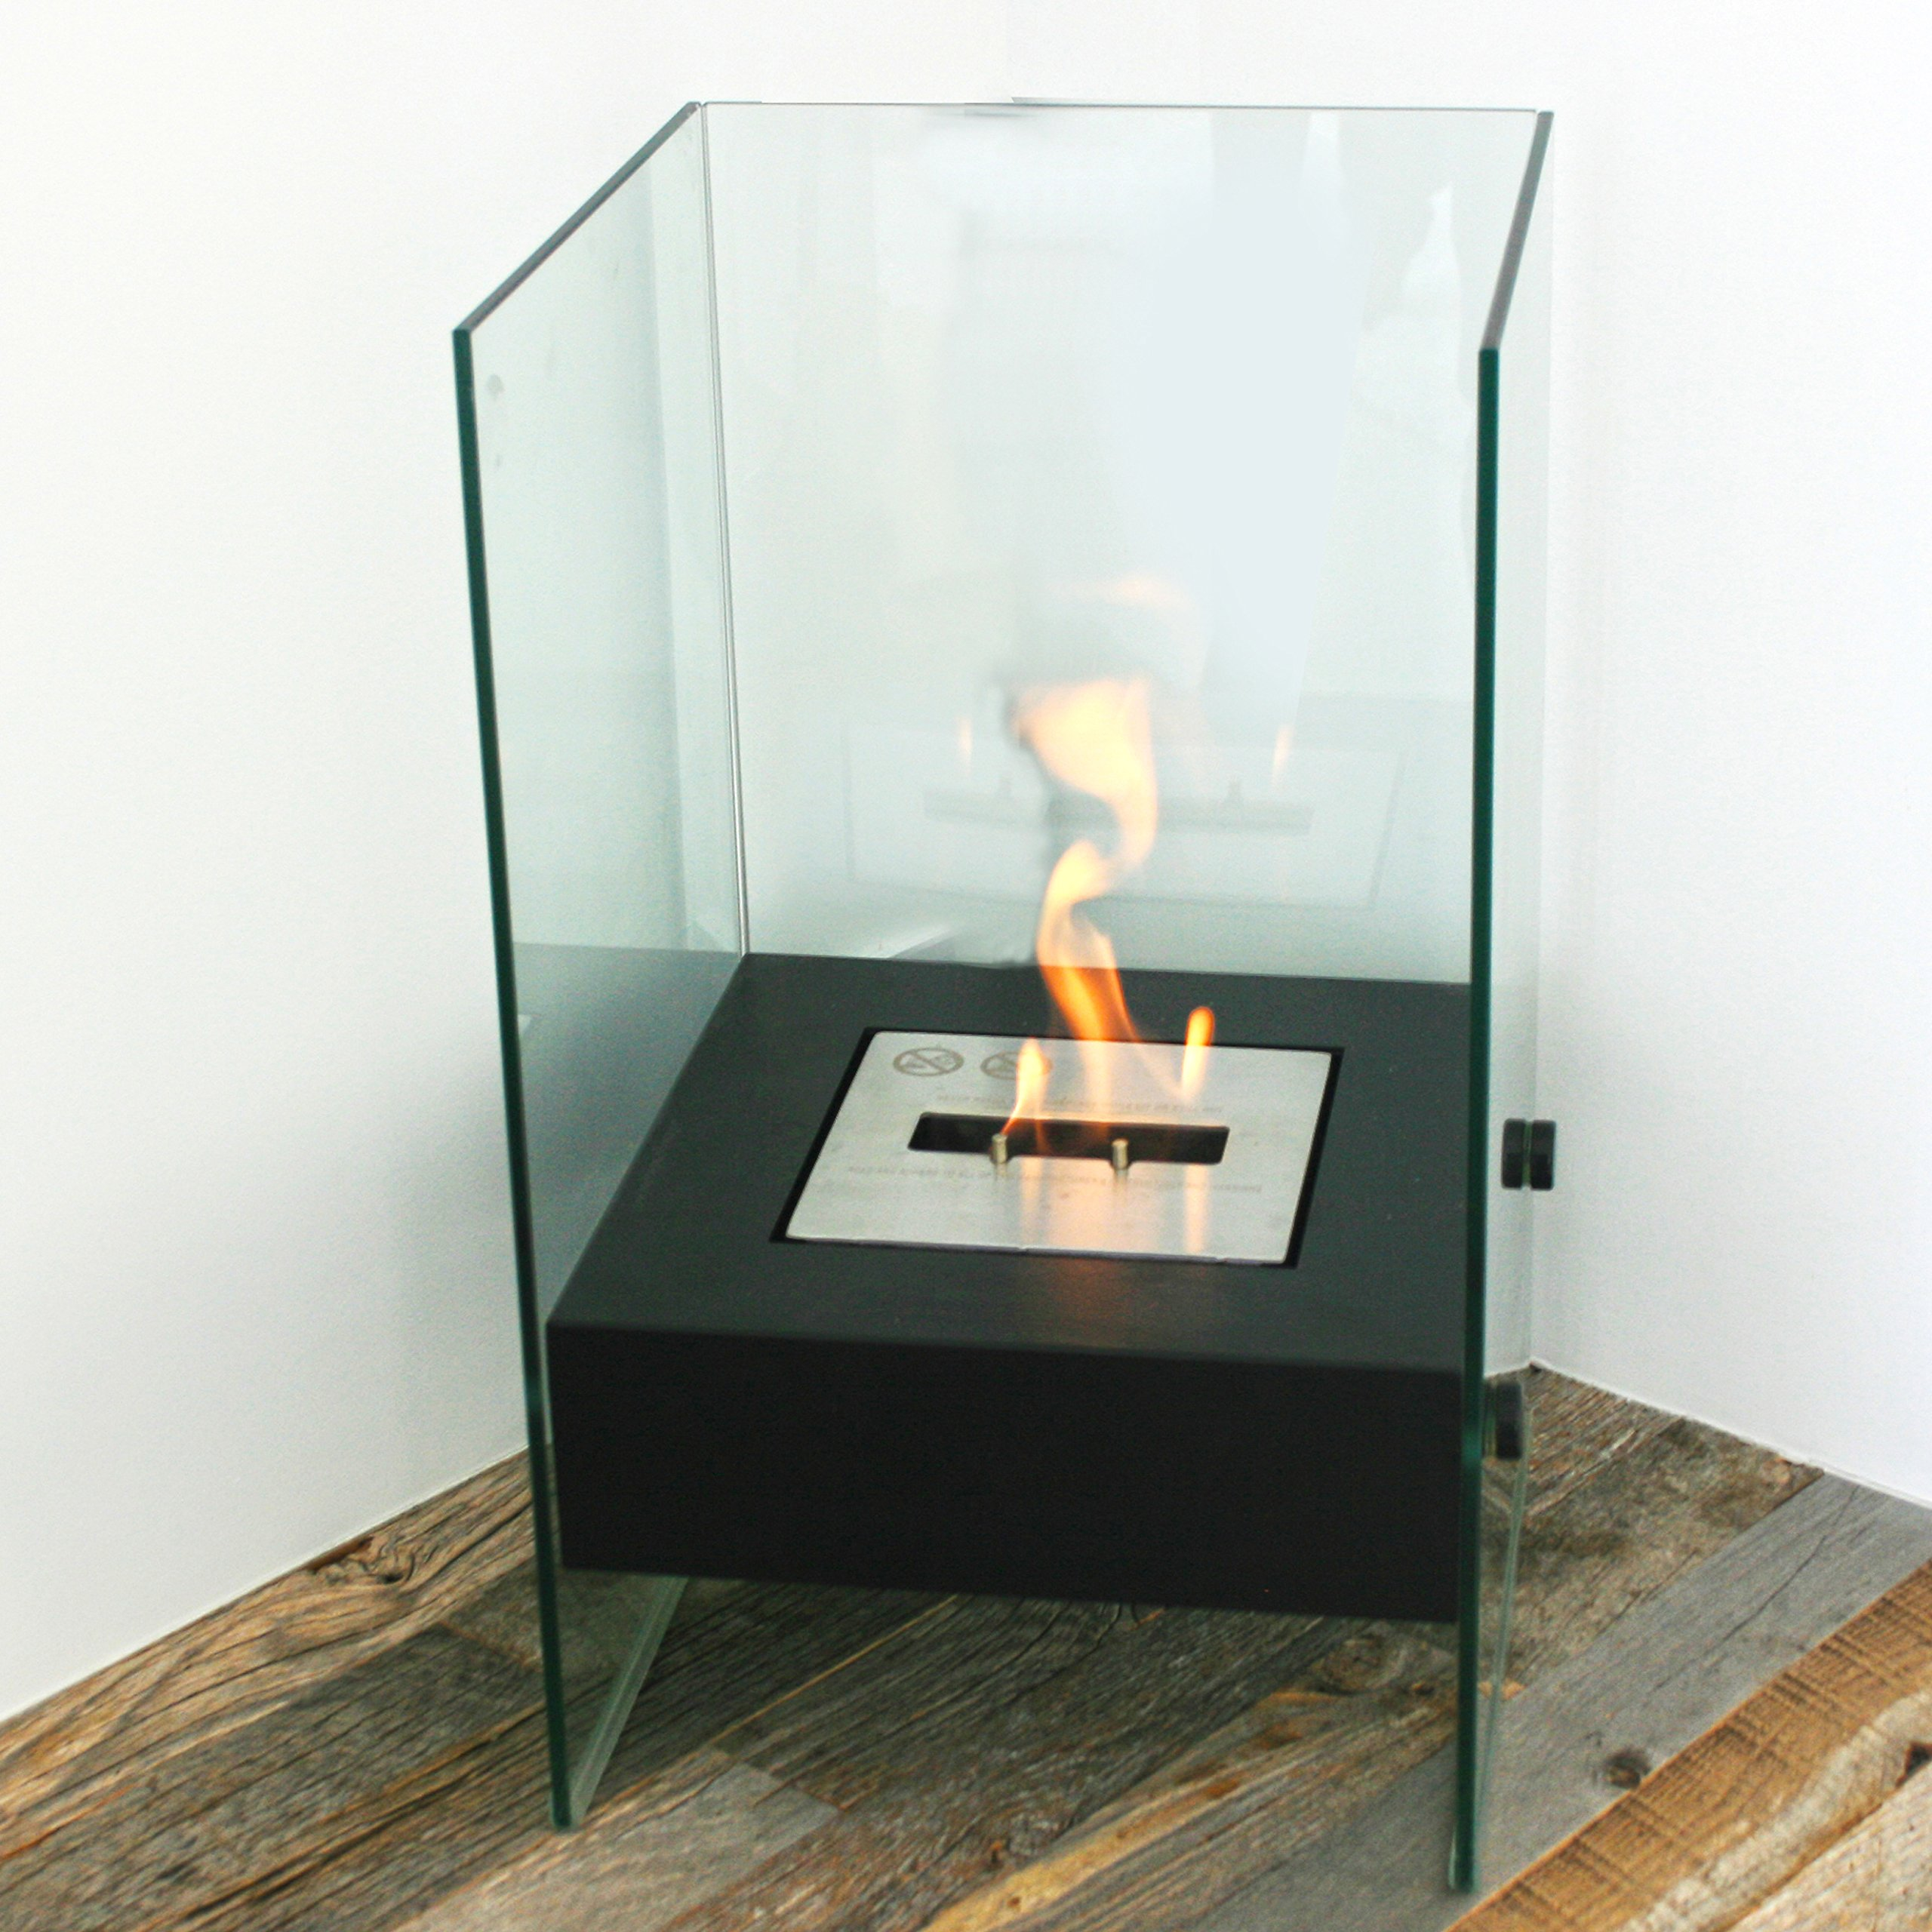 Chic Fireplaces Bismarck Luxury Ventless Black Free Standing Modern Bio-Ethanol Fireplace Stainless Steel Burner Insert by Chic Fireplaces